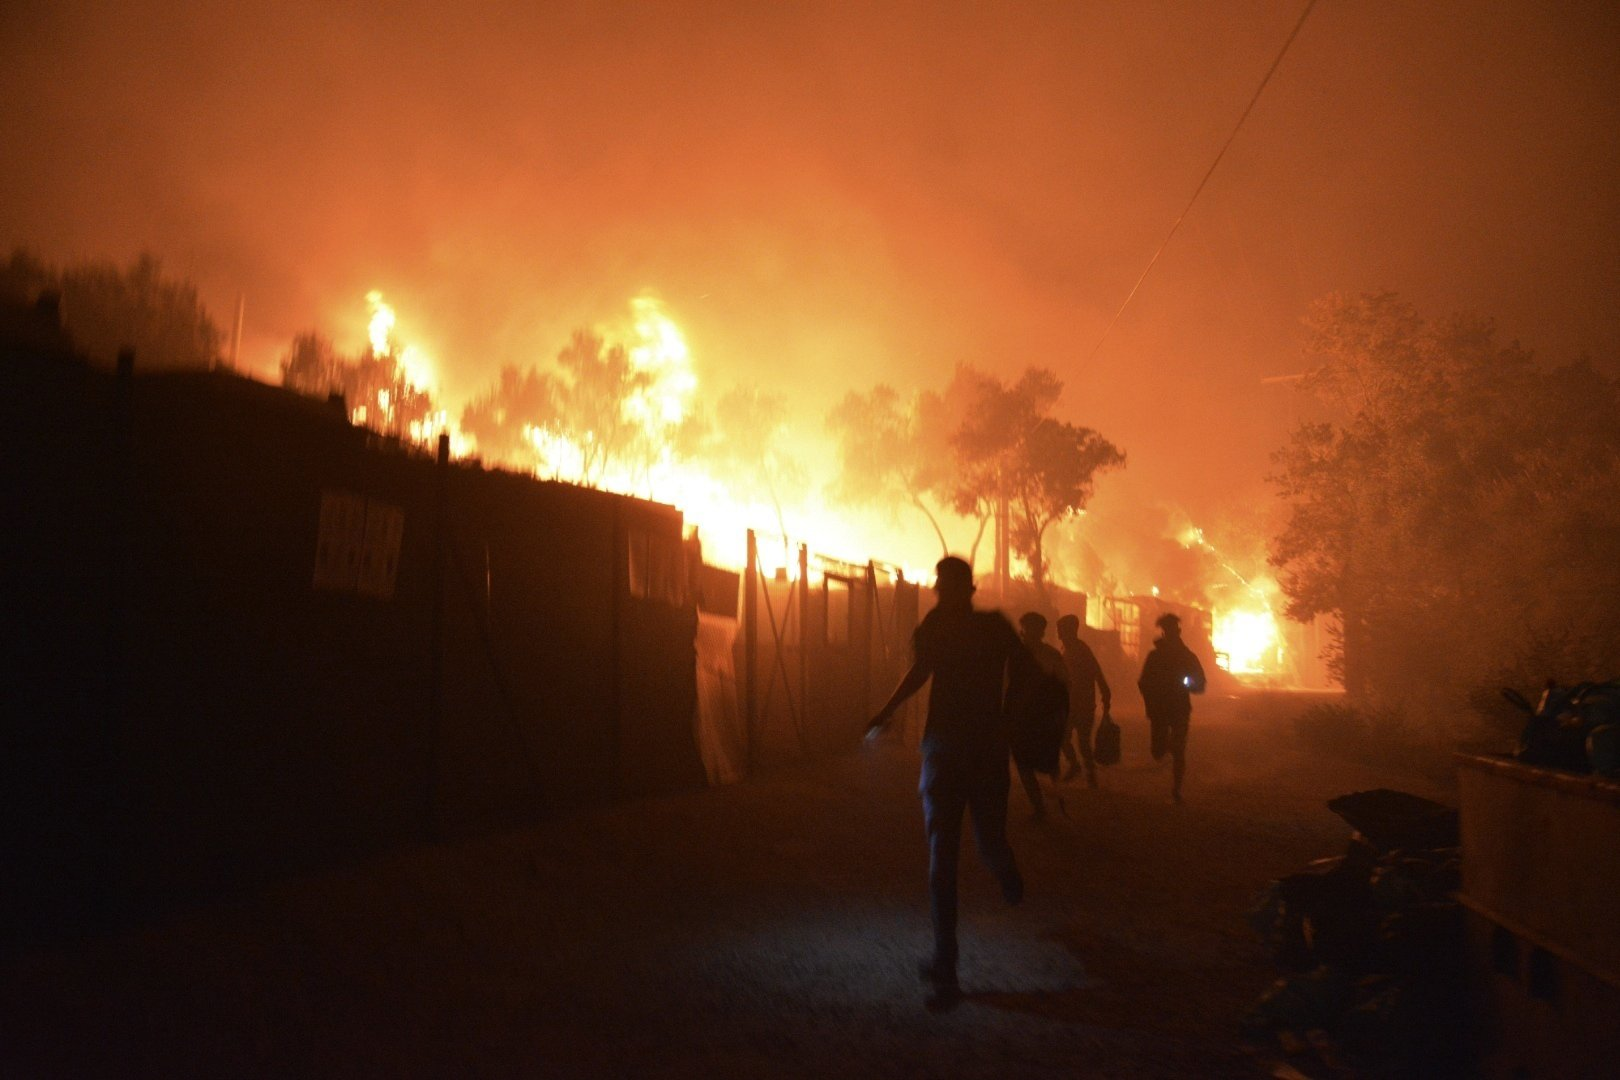 Moria-Refugee-Camp-Fire-003.jpg